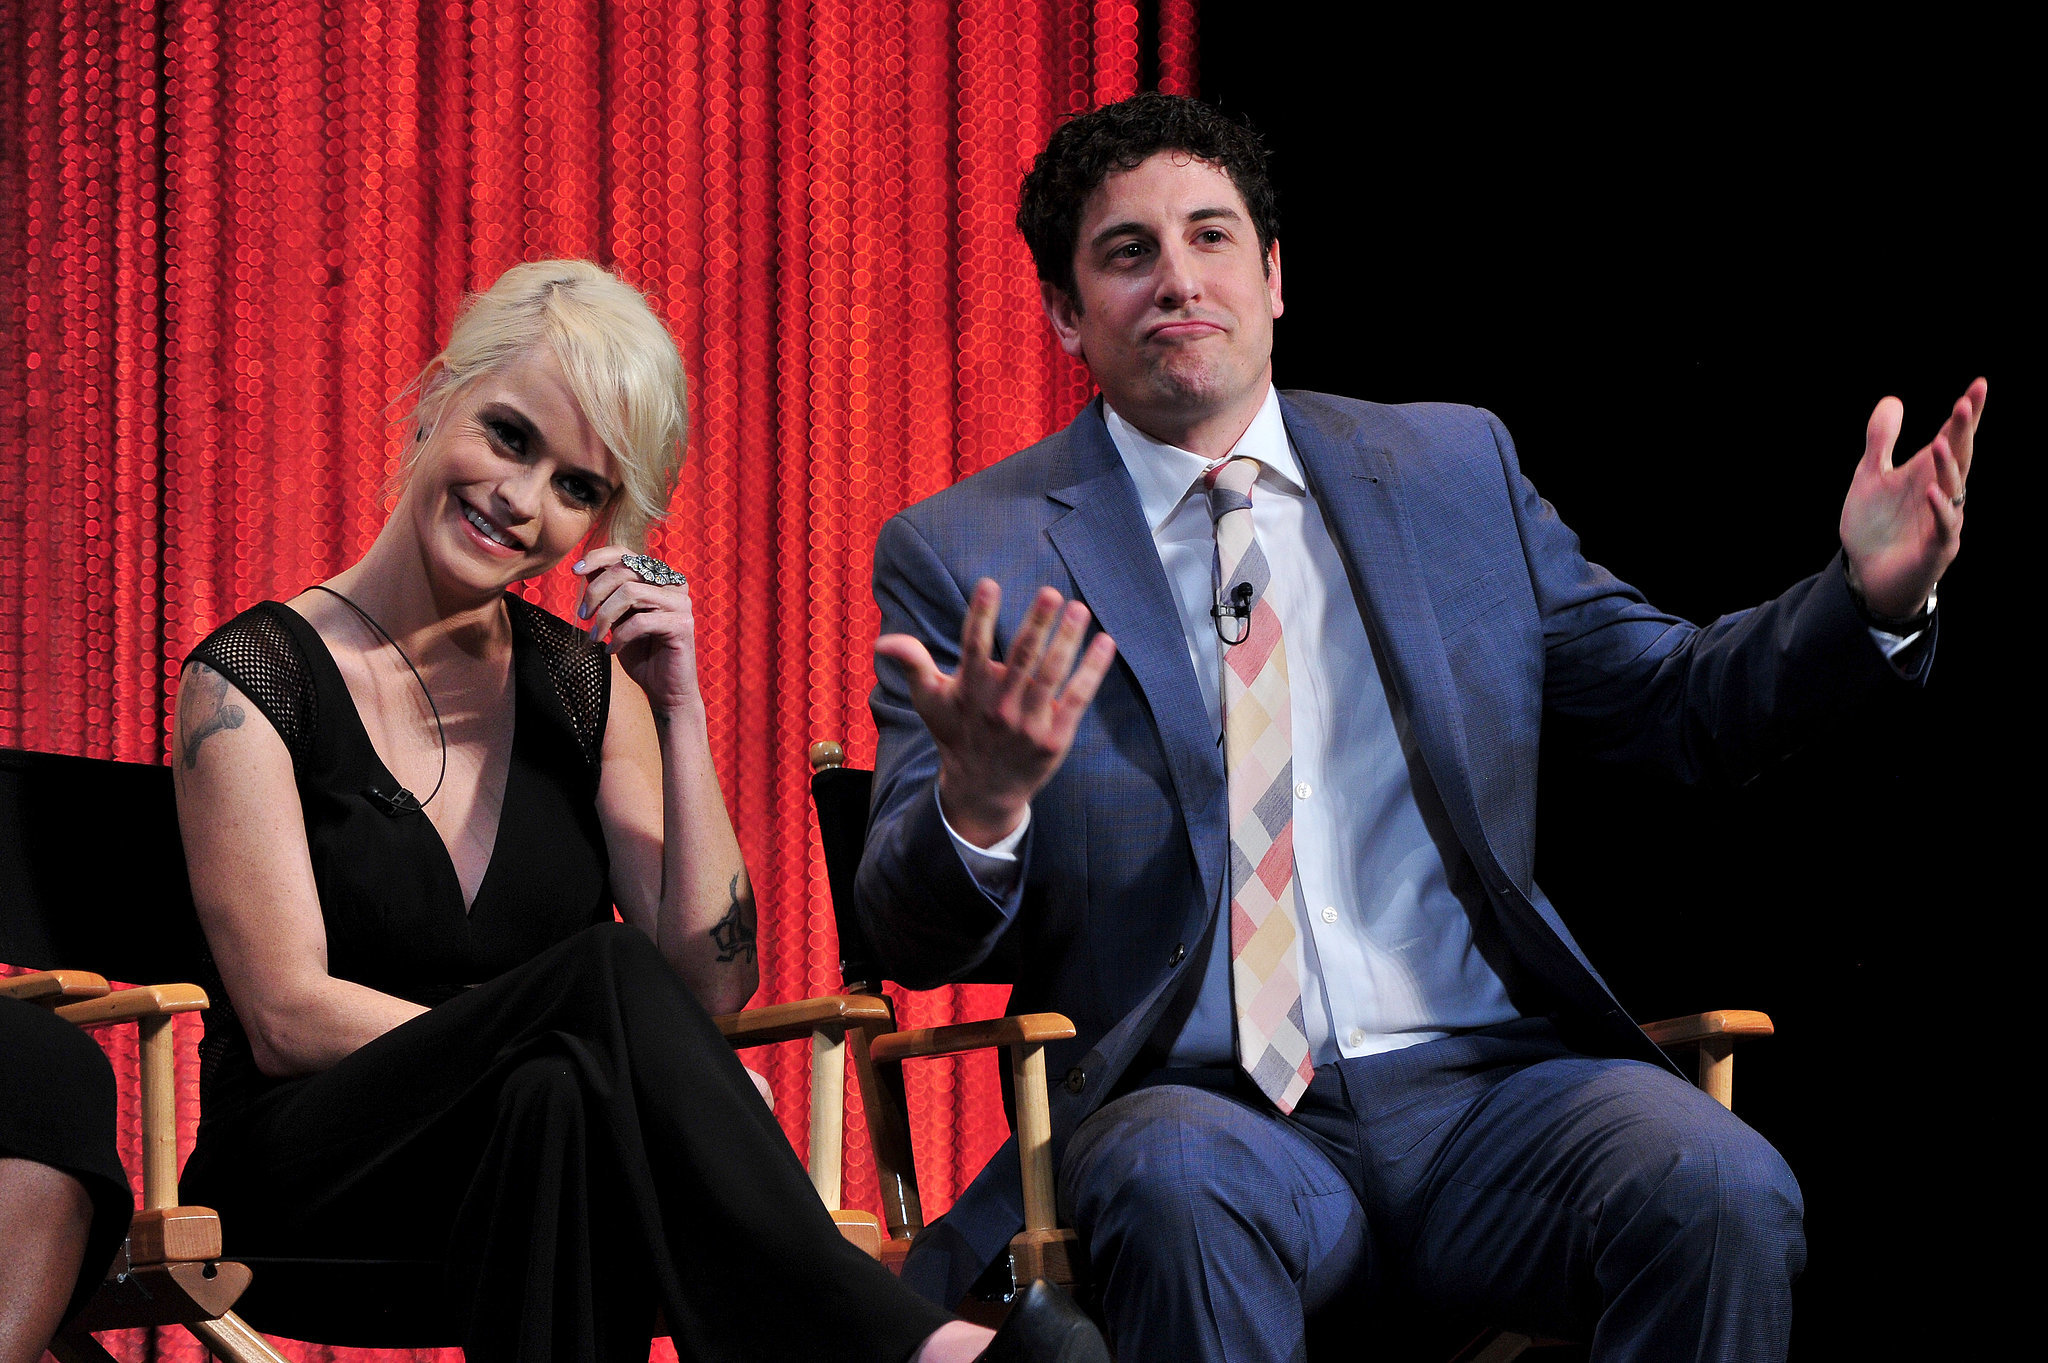 Taryn Manning and Jason Biggs joined their Orange Is the New Black costars on stage.